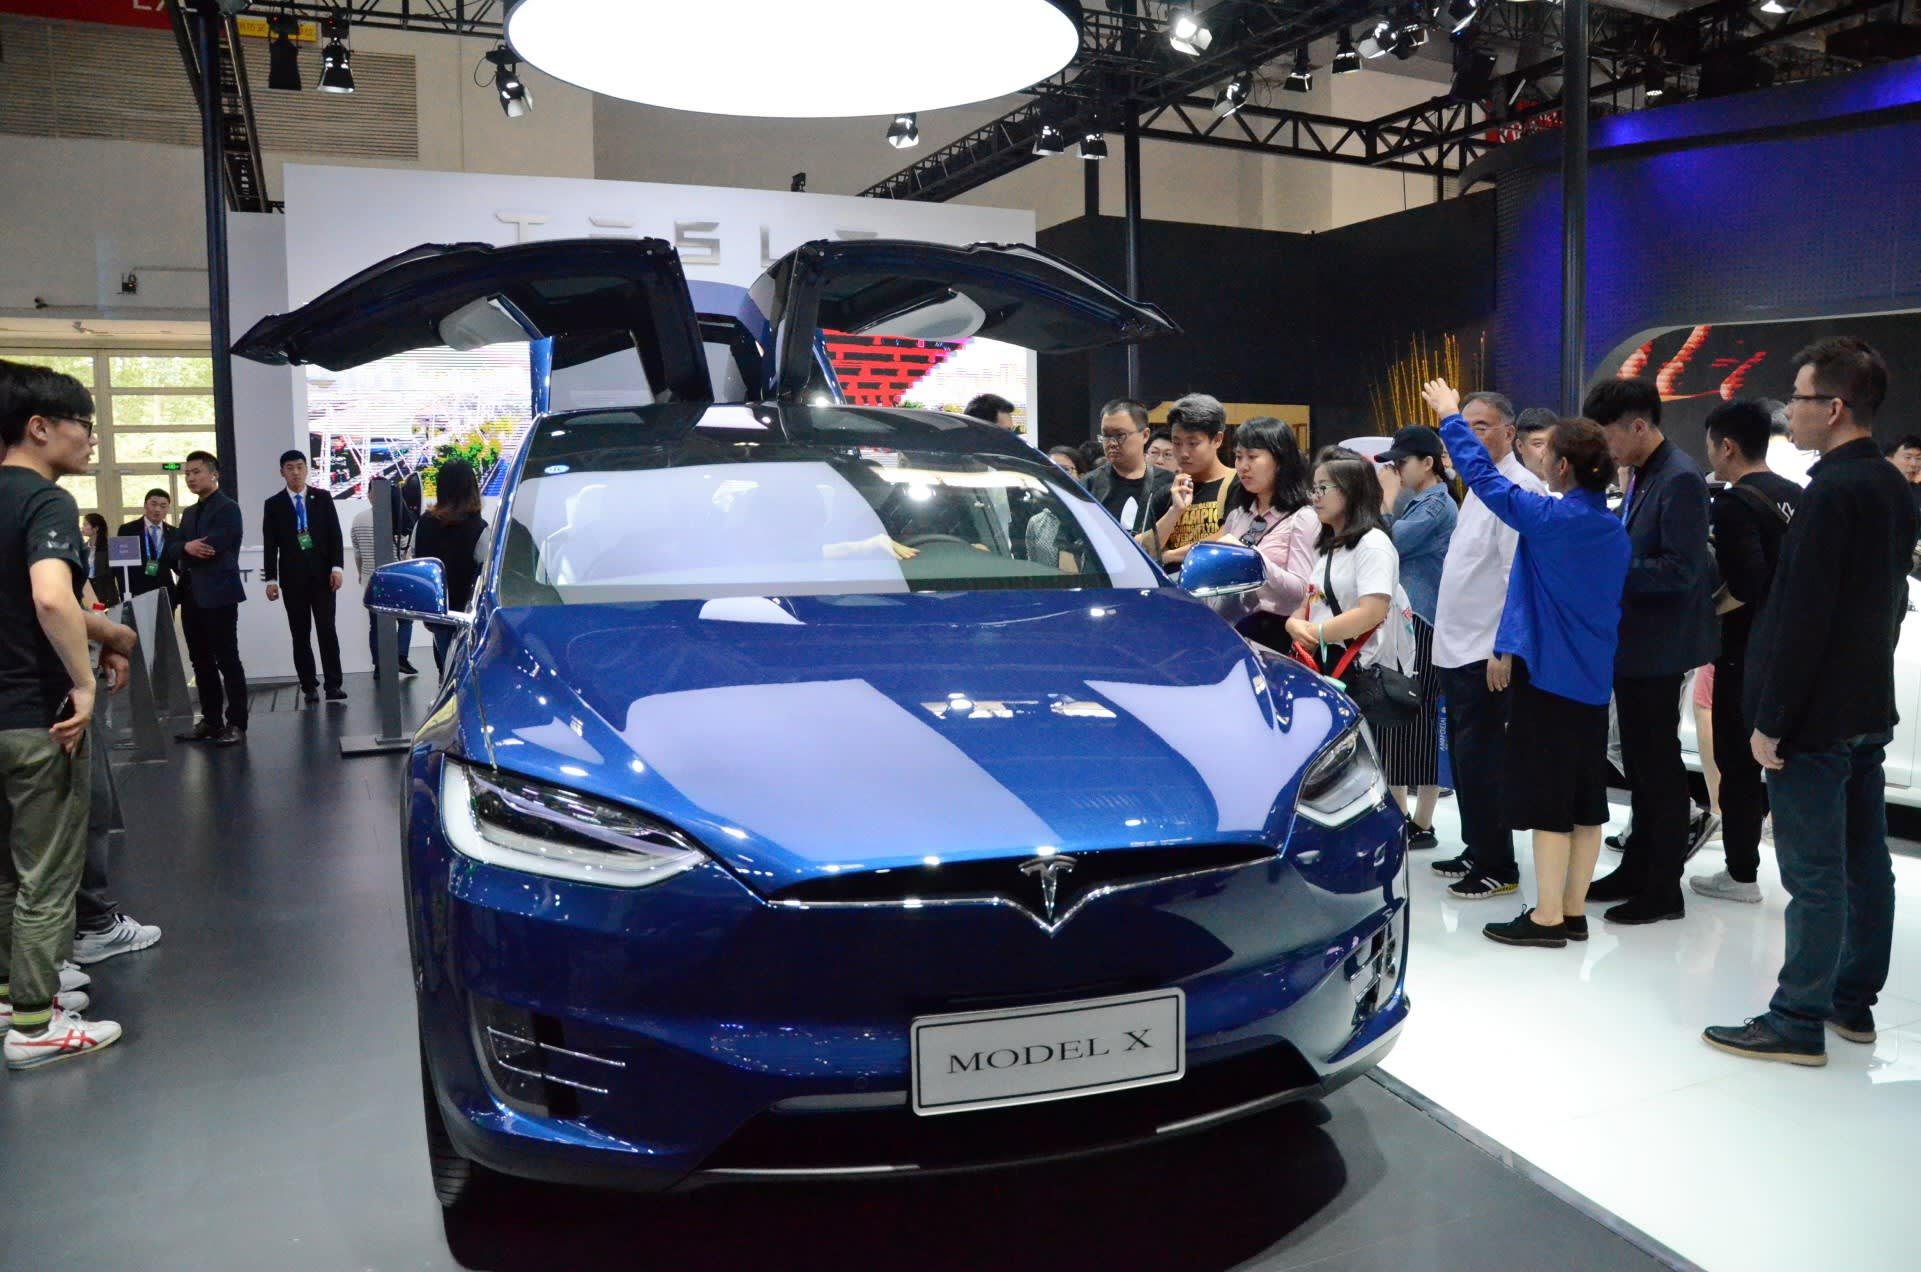 Tesla charges ahead in China as it burns through cash - Nikkei Asian Review